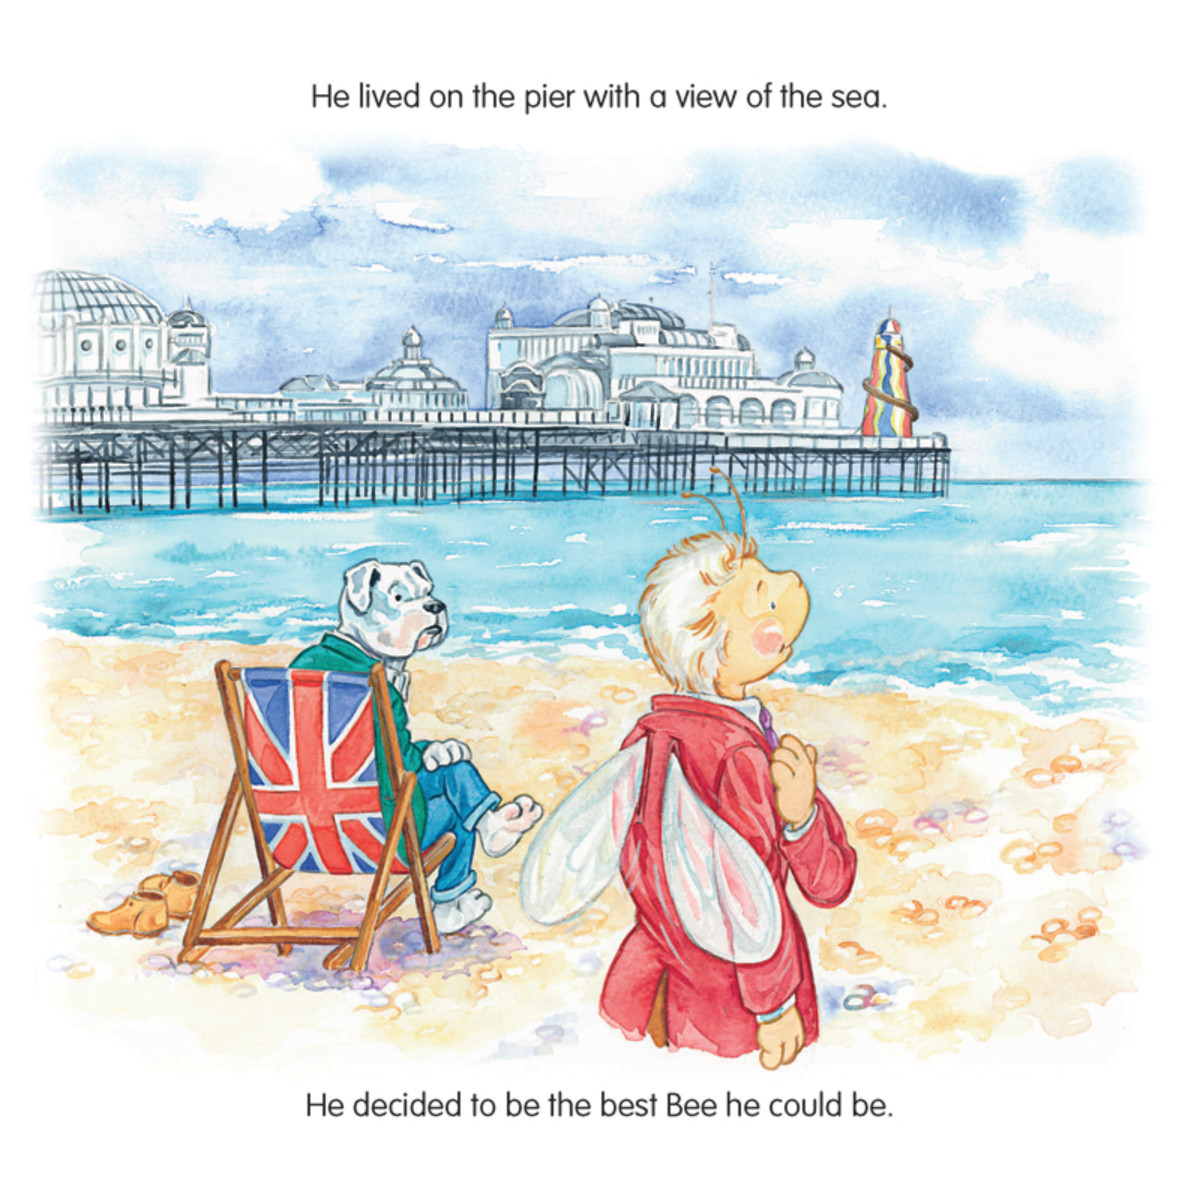 The book's Stinger character is a bell boy at a posh hotel in Brighton, England, lives on Brighton Pier and was inspired by the Ace Face/Bell Boy character portrayed by Sting in the 1979 film version of Quadrophenia. (Illustration by Tina Freeman)